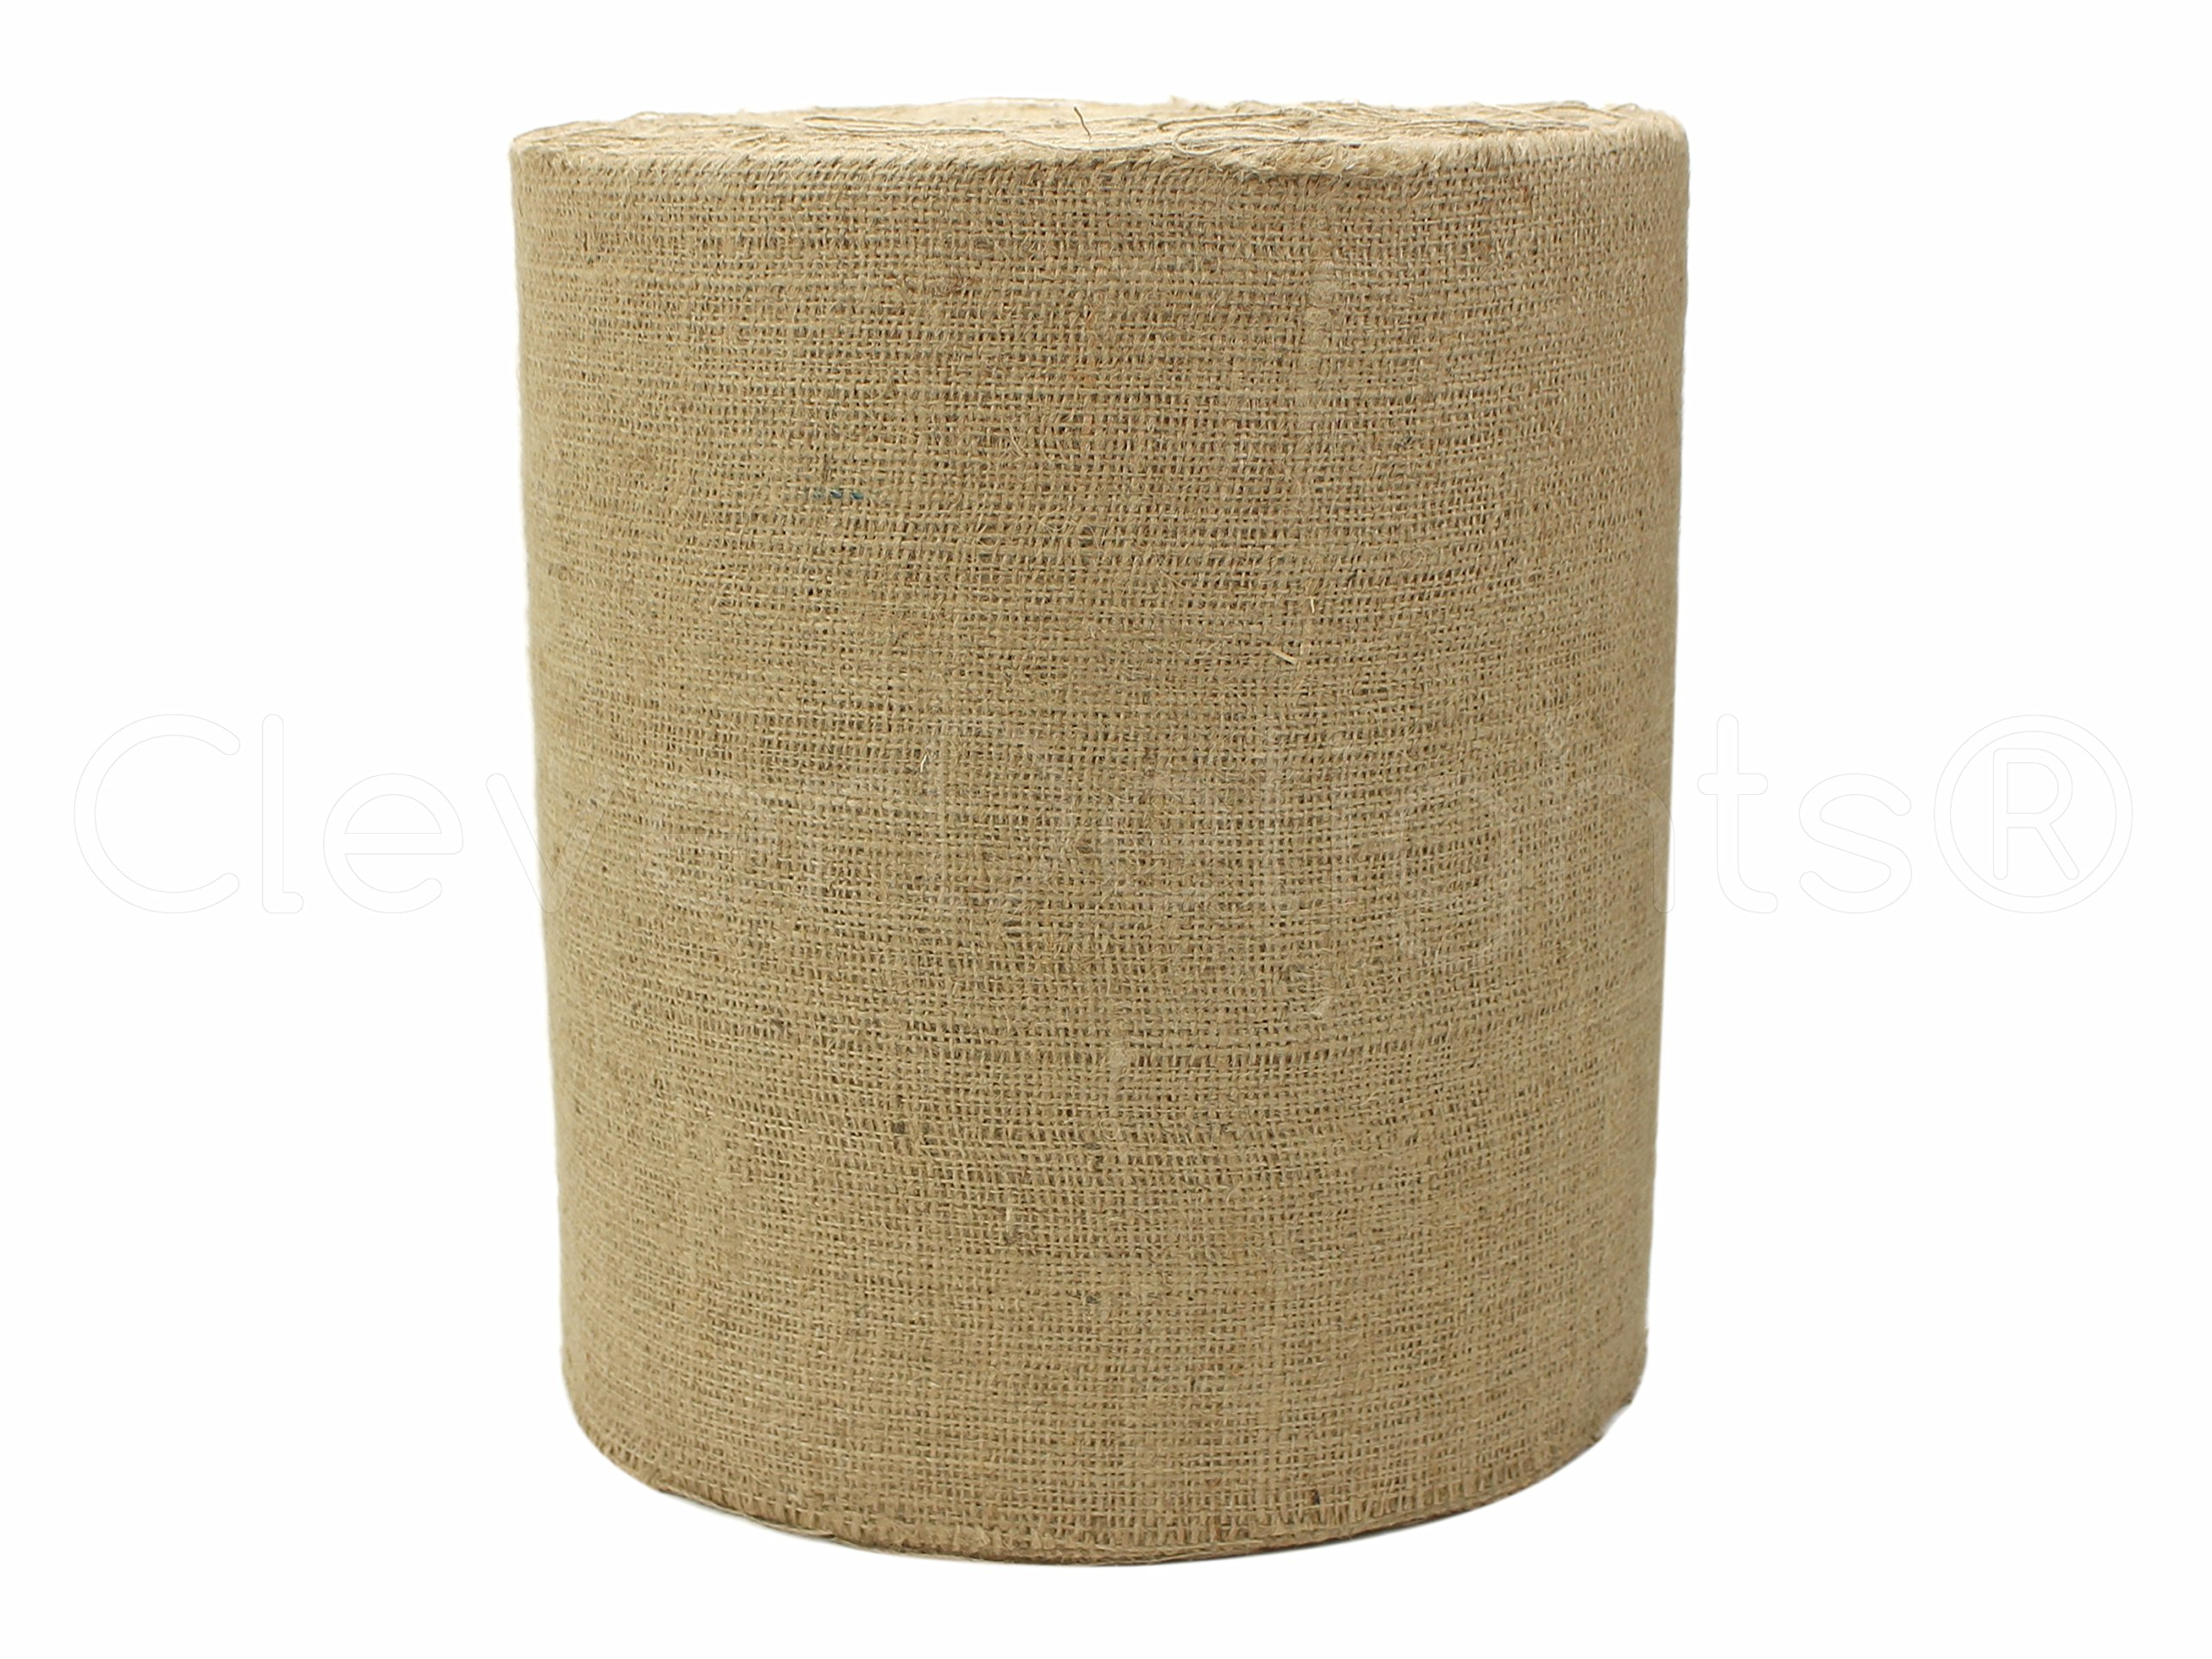 CleverDelights 12'' Natural Burlap - Industrial Grade - 100 Yard Roll - Tight-Weave Jute Burlap Fabric